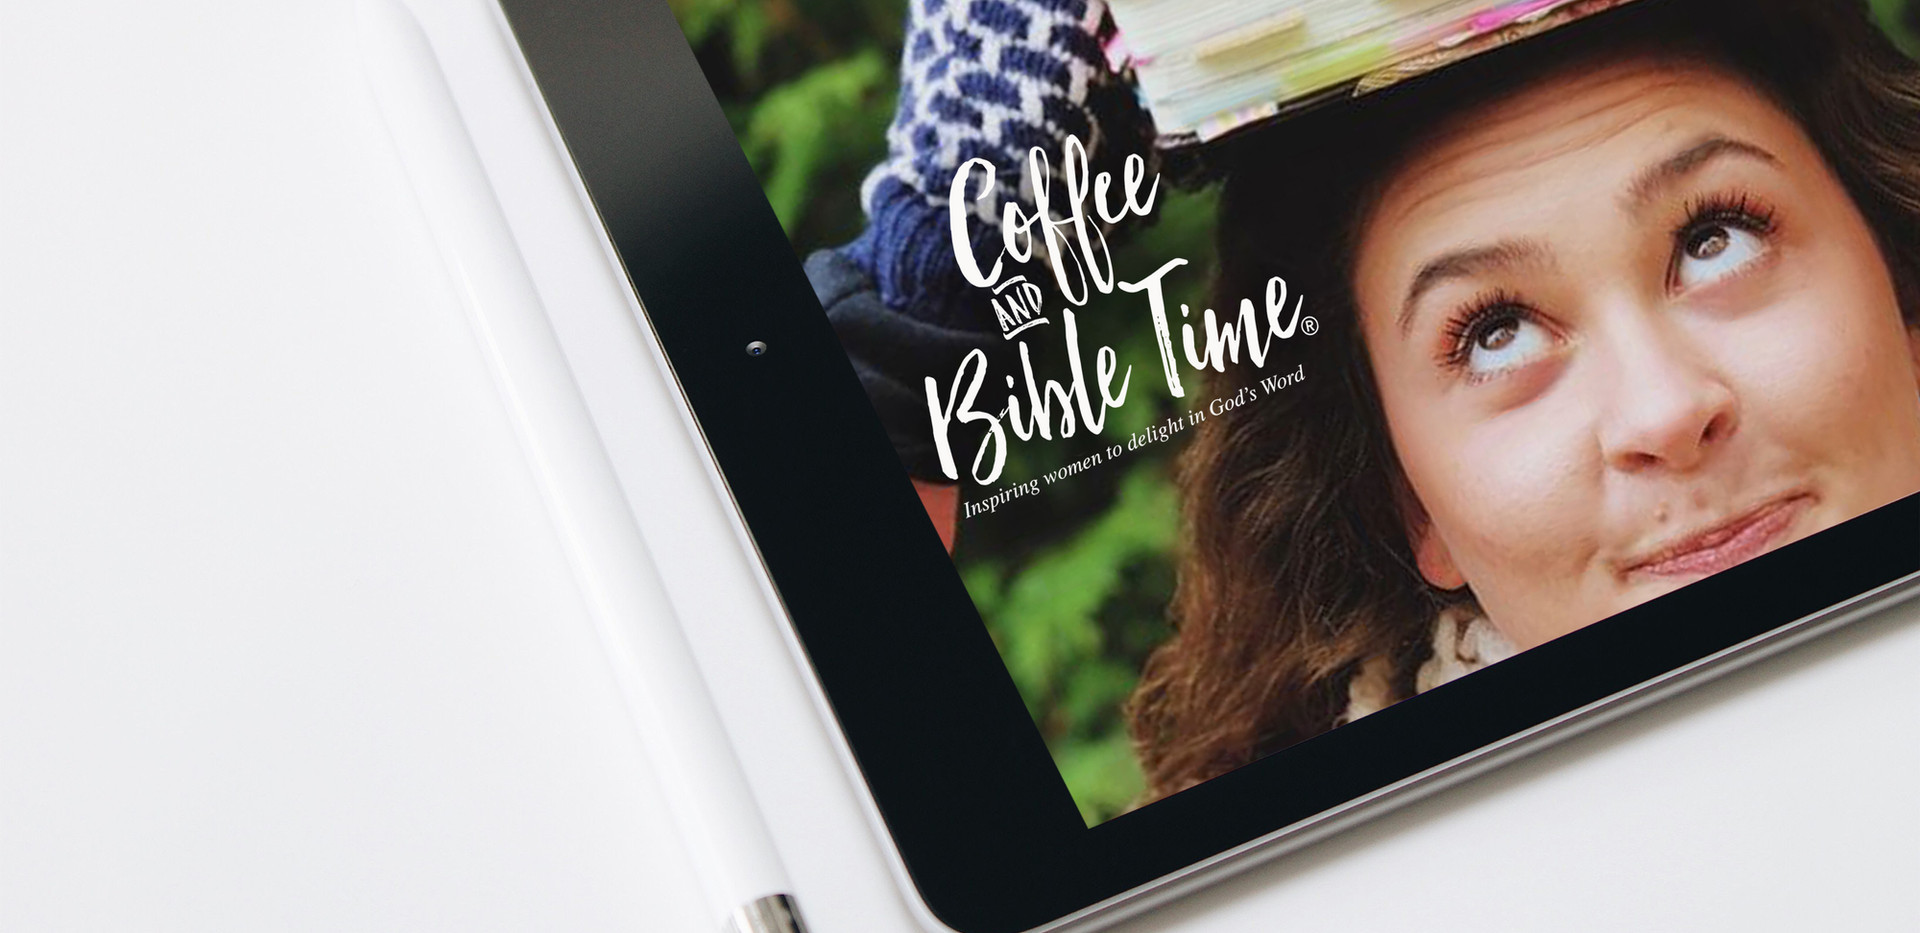 Coffee and Bible Time